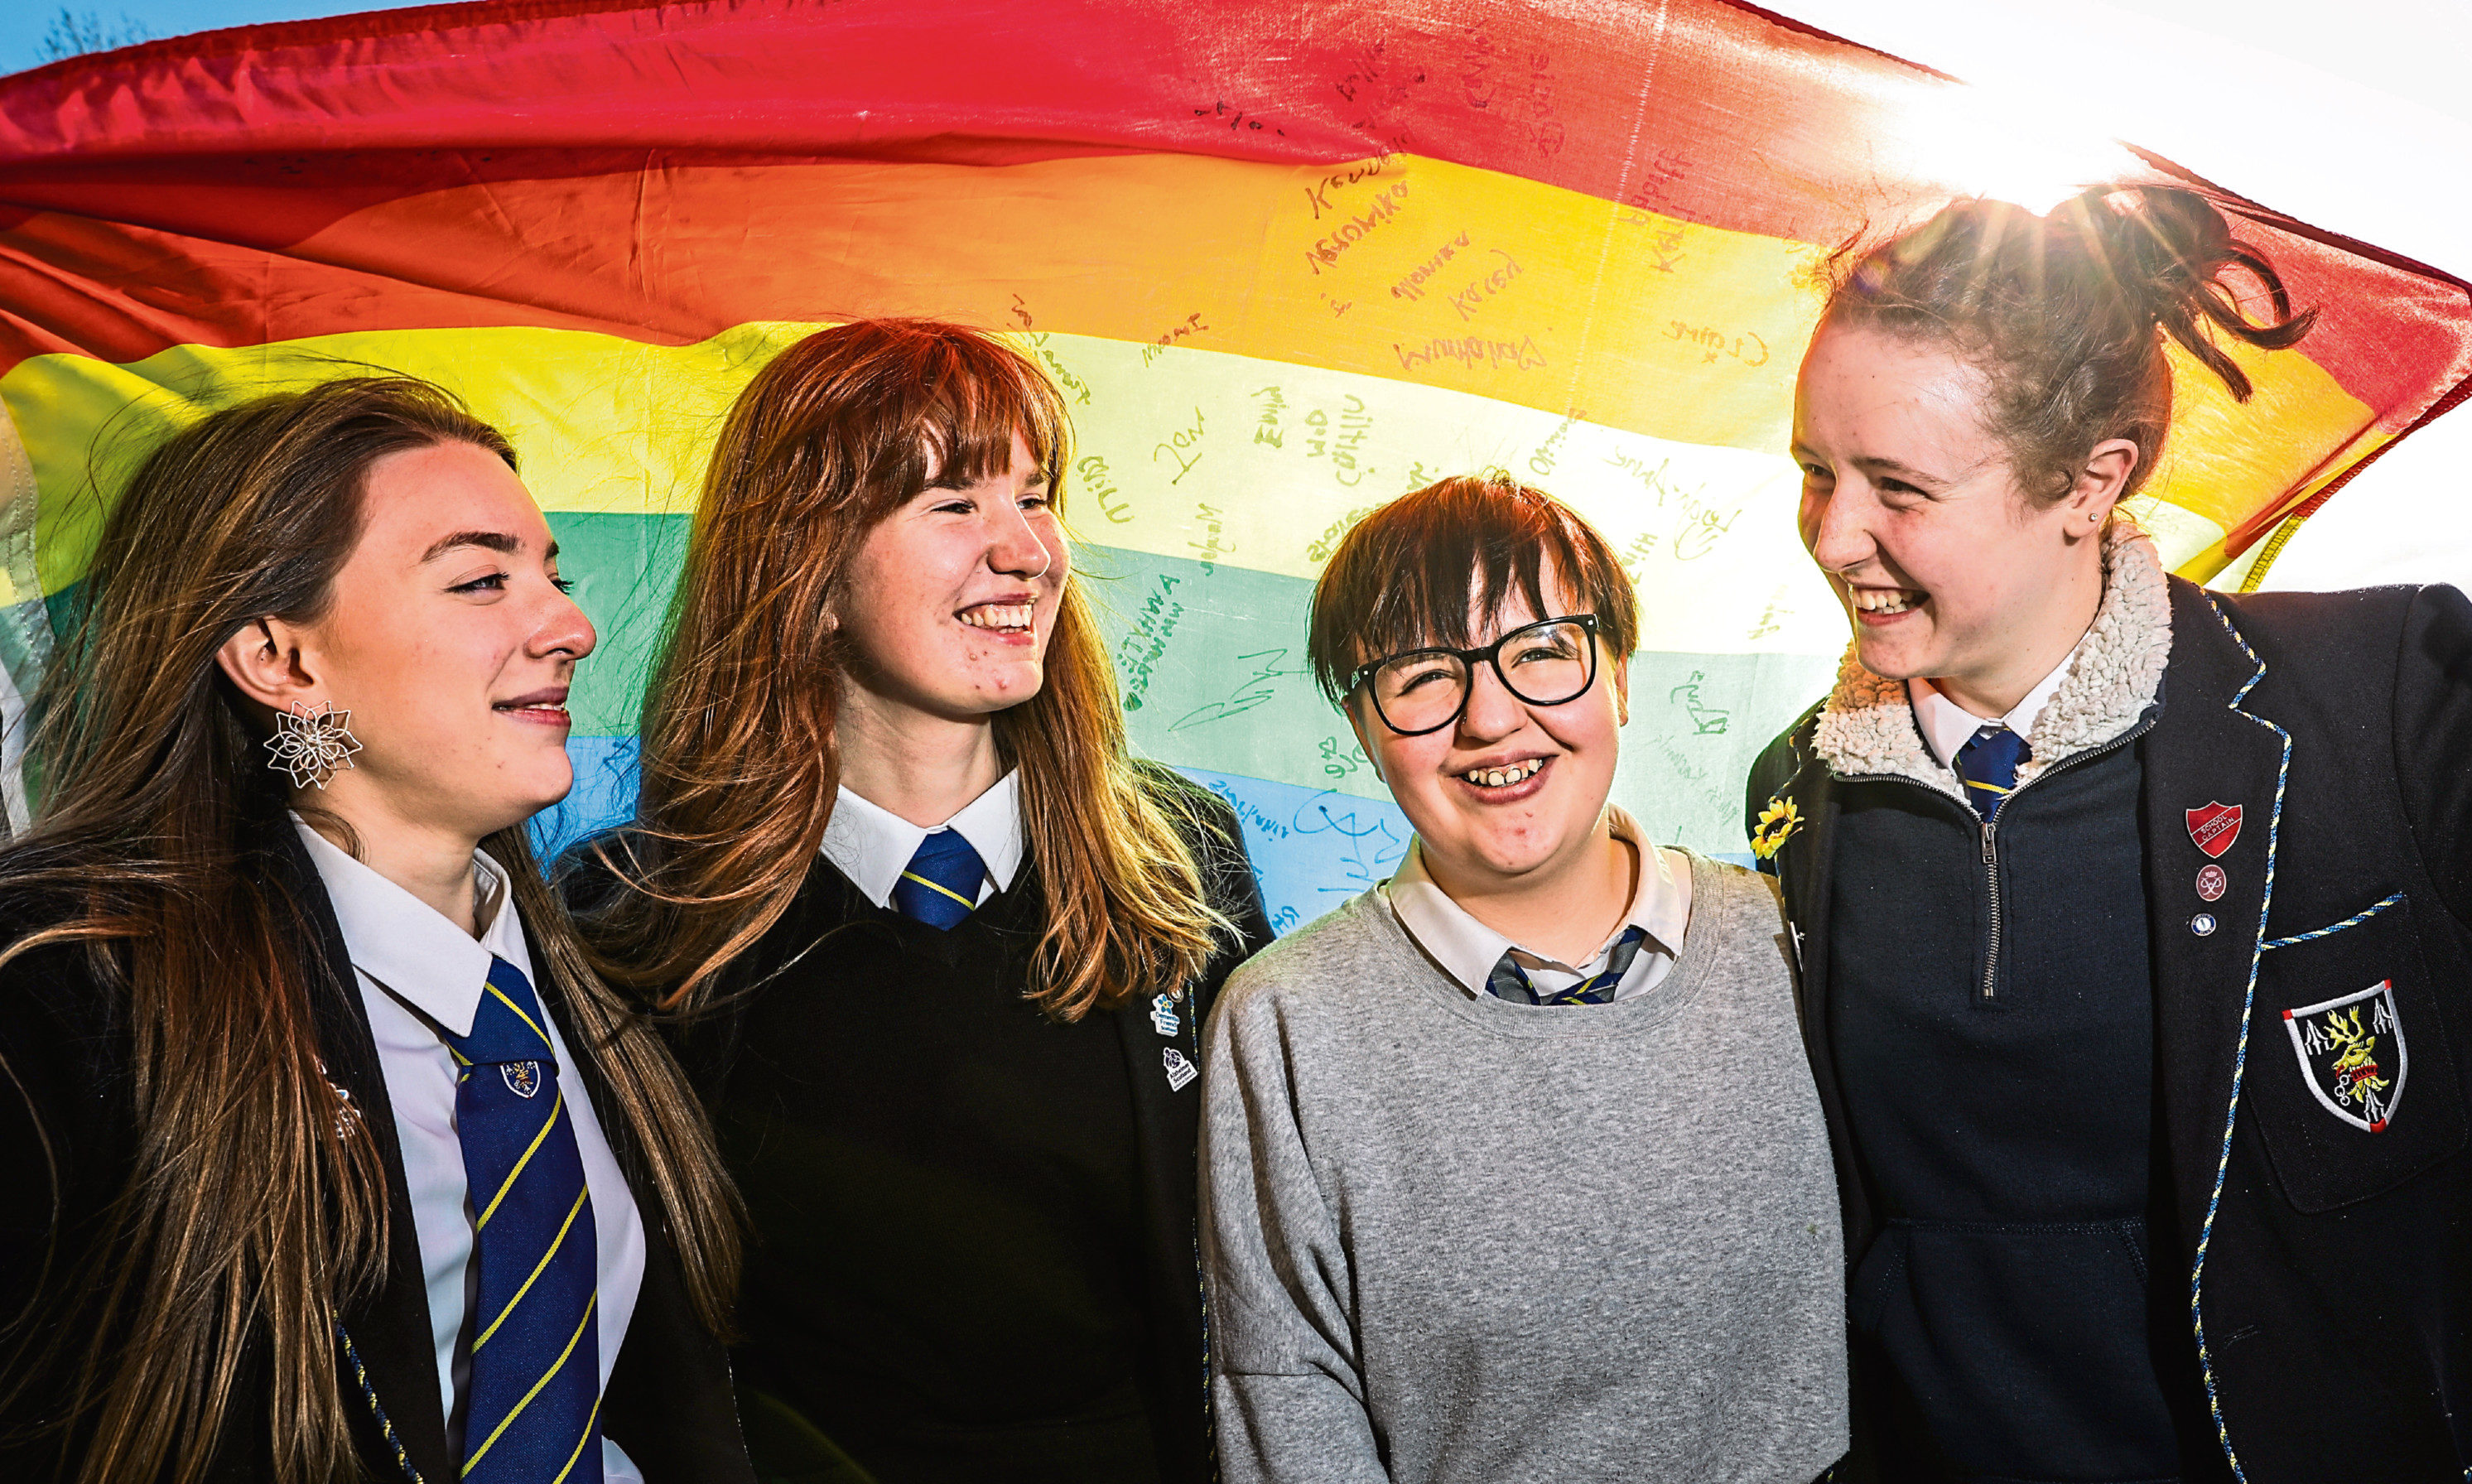 Shannon Robertson, 17, Robyn Thomson, 17, Aimee Whyte, 14 and Robyn White, 18.